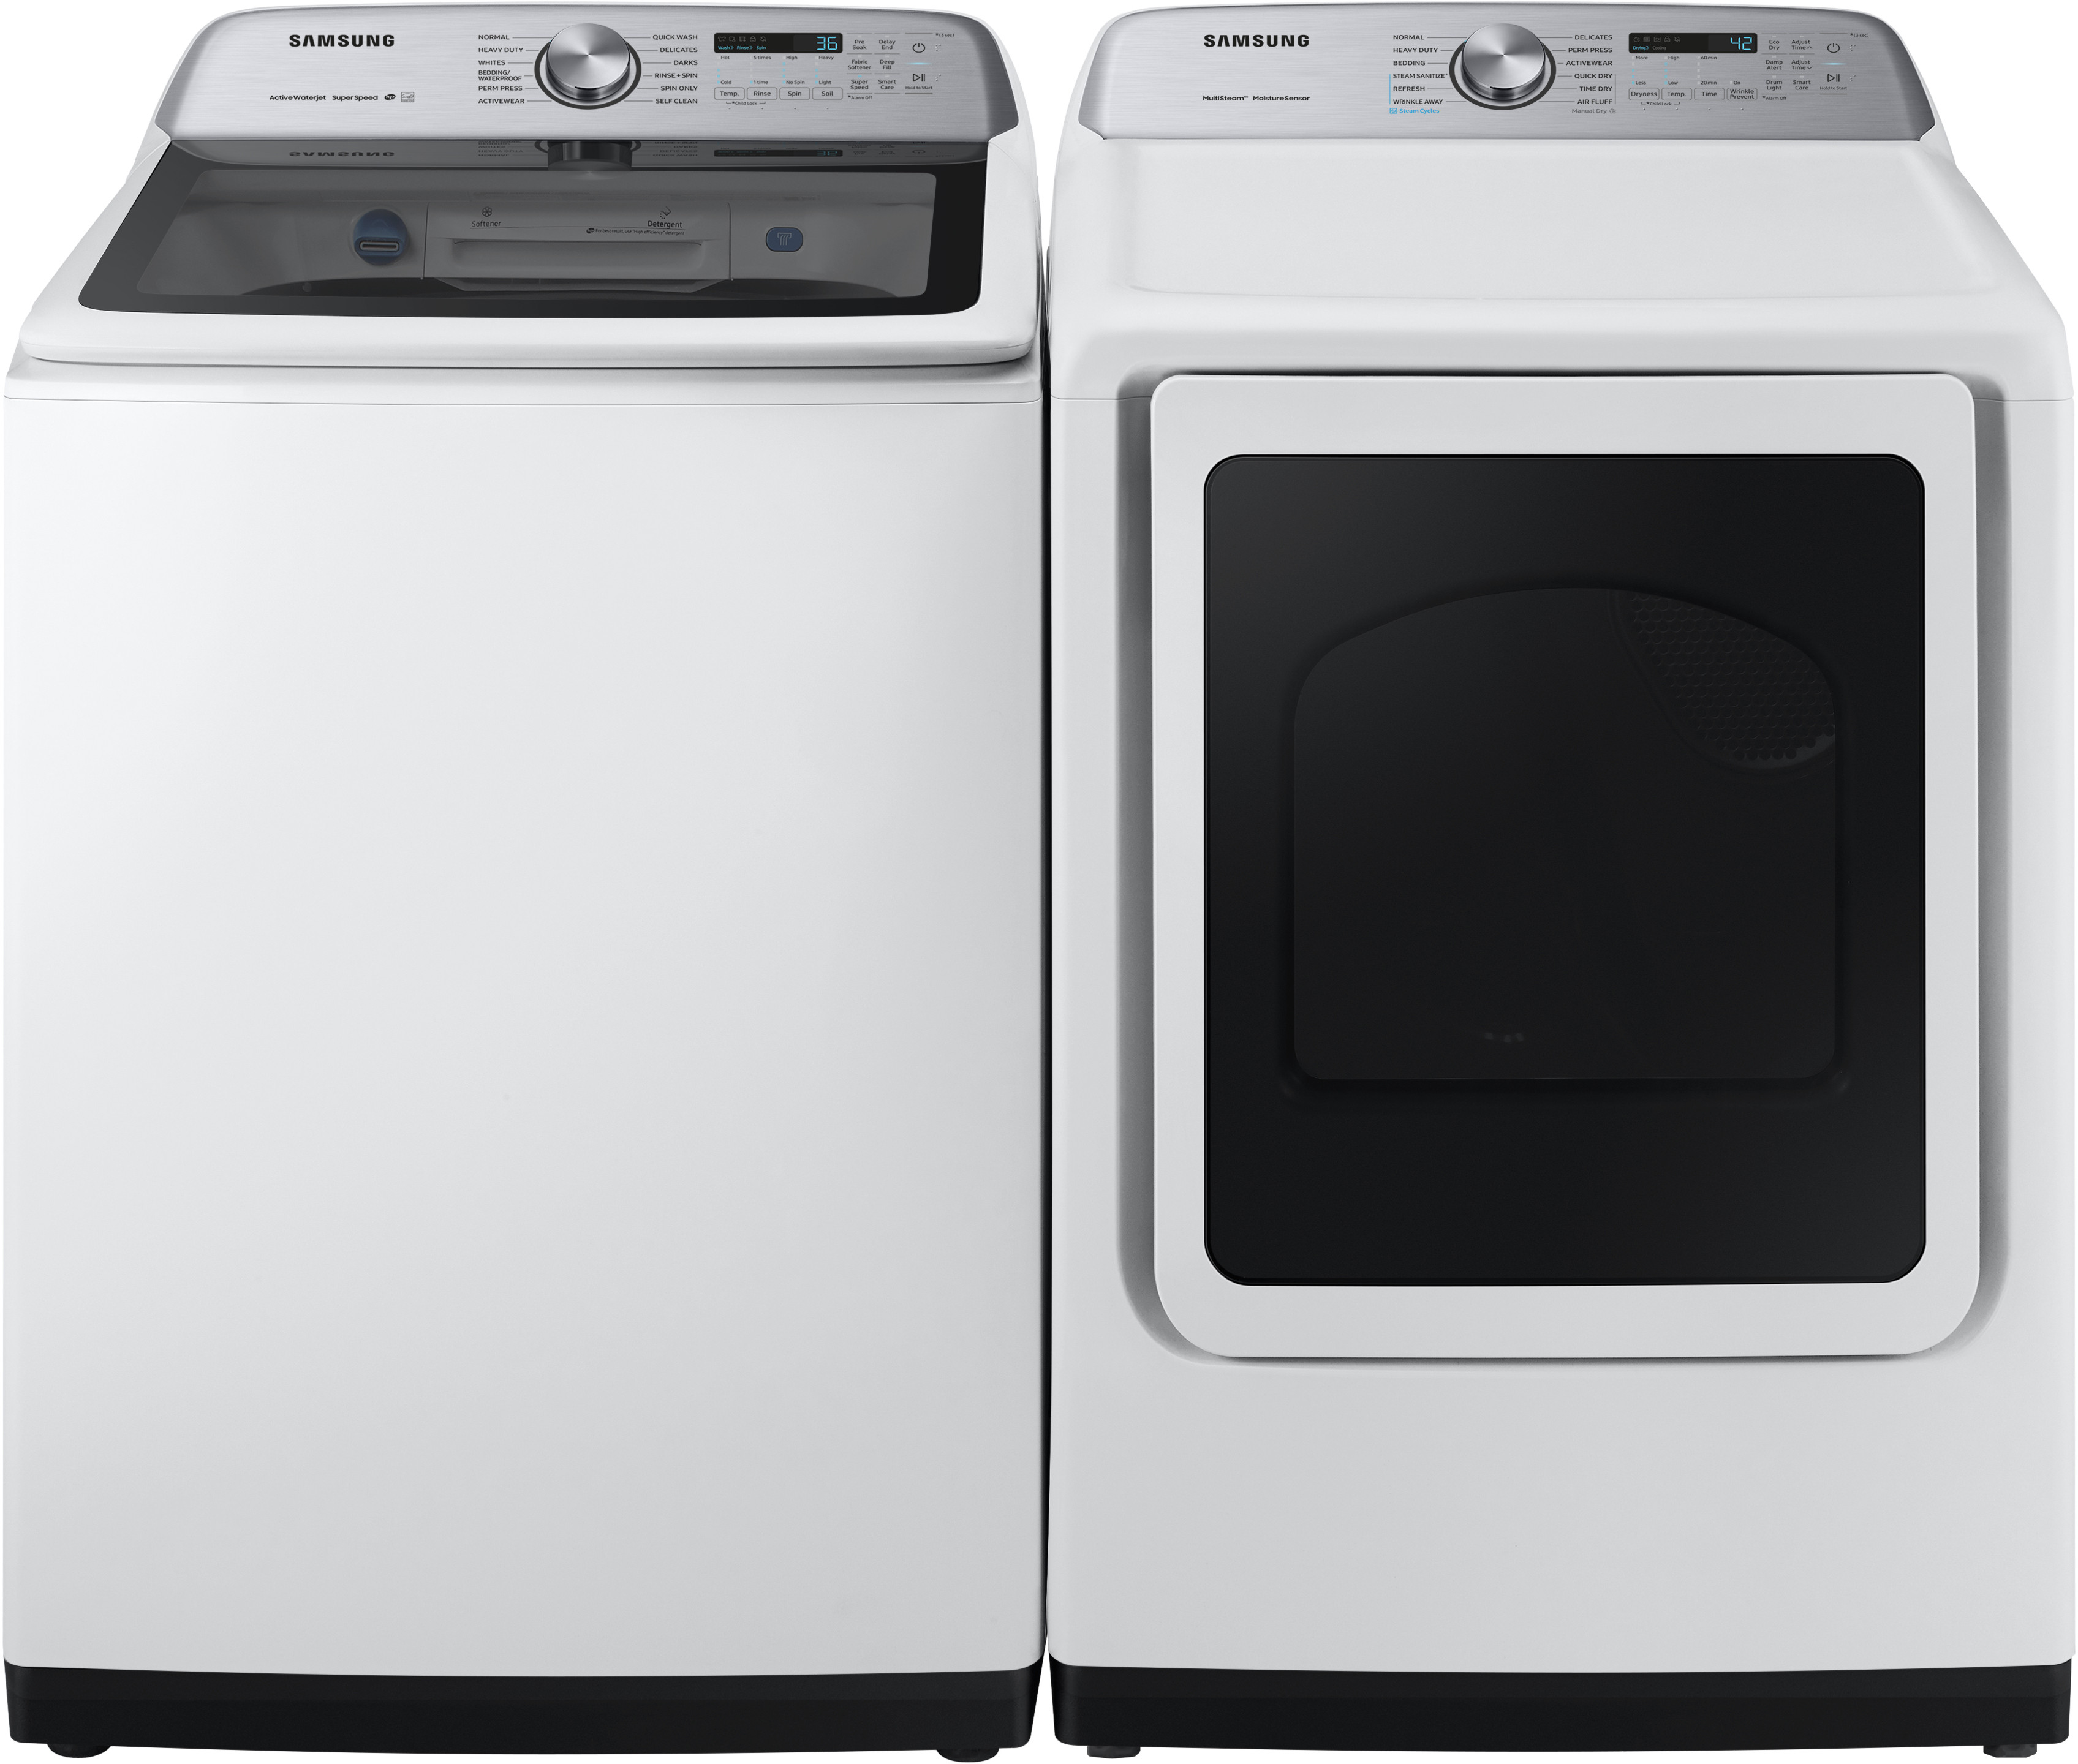 Samsung Sawadrgw54001 Side By Side Washer Amp Dryer Set With